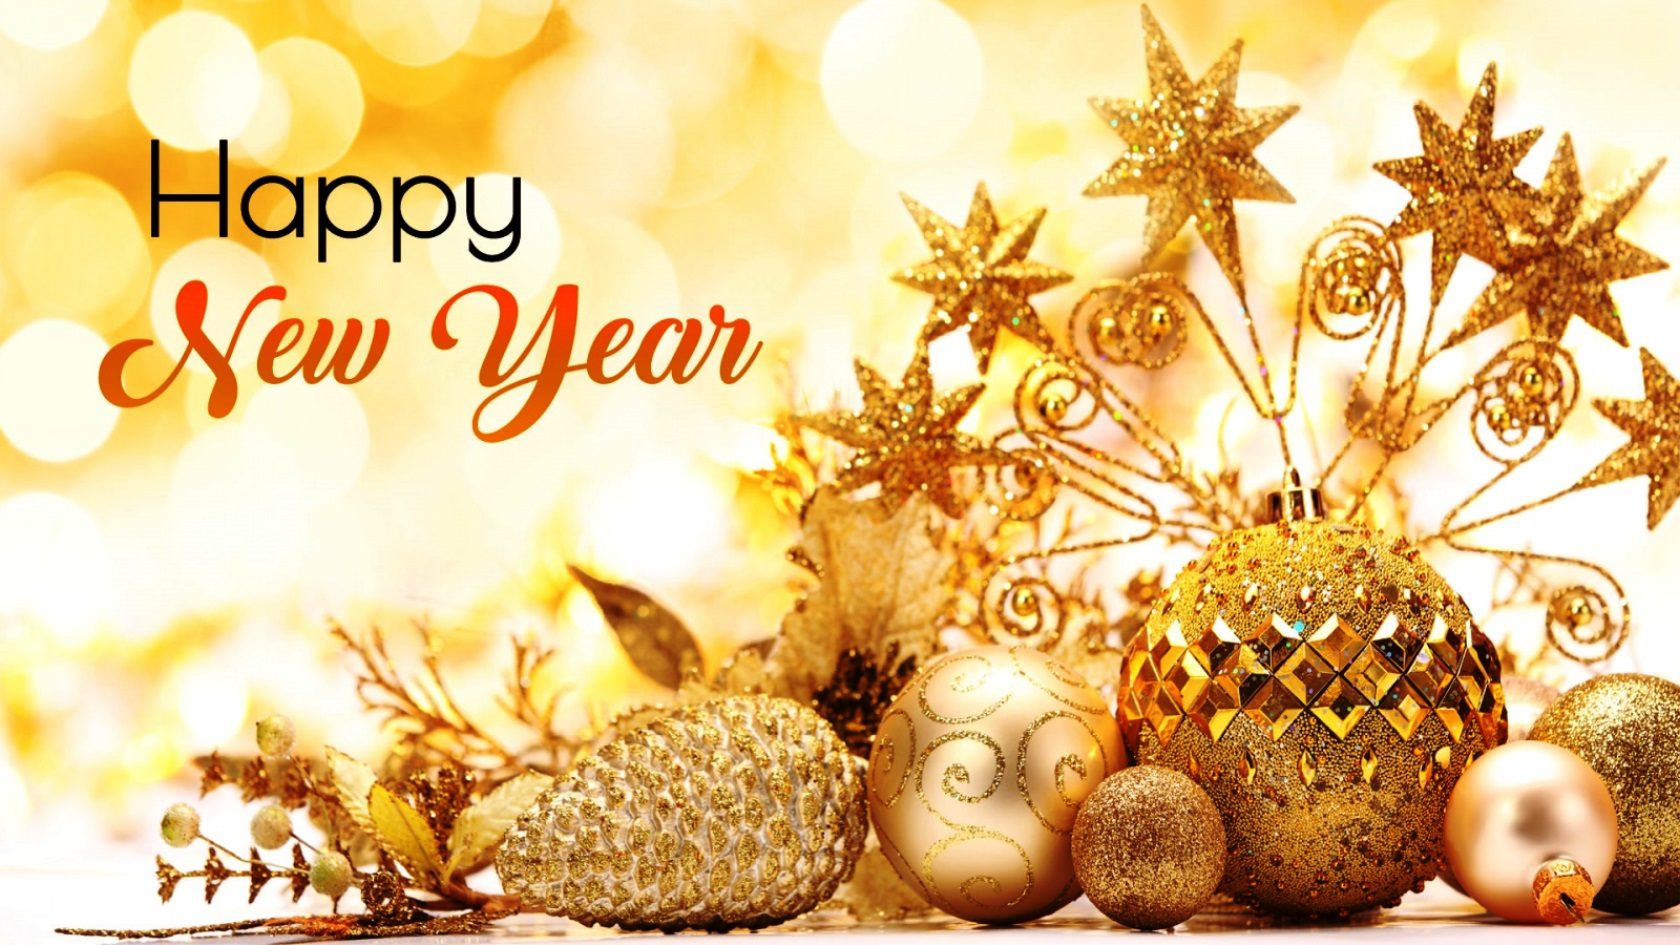 Happy New Year Wallpapers And Greetings (1)